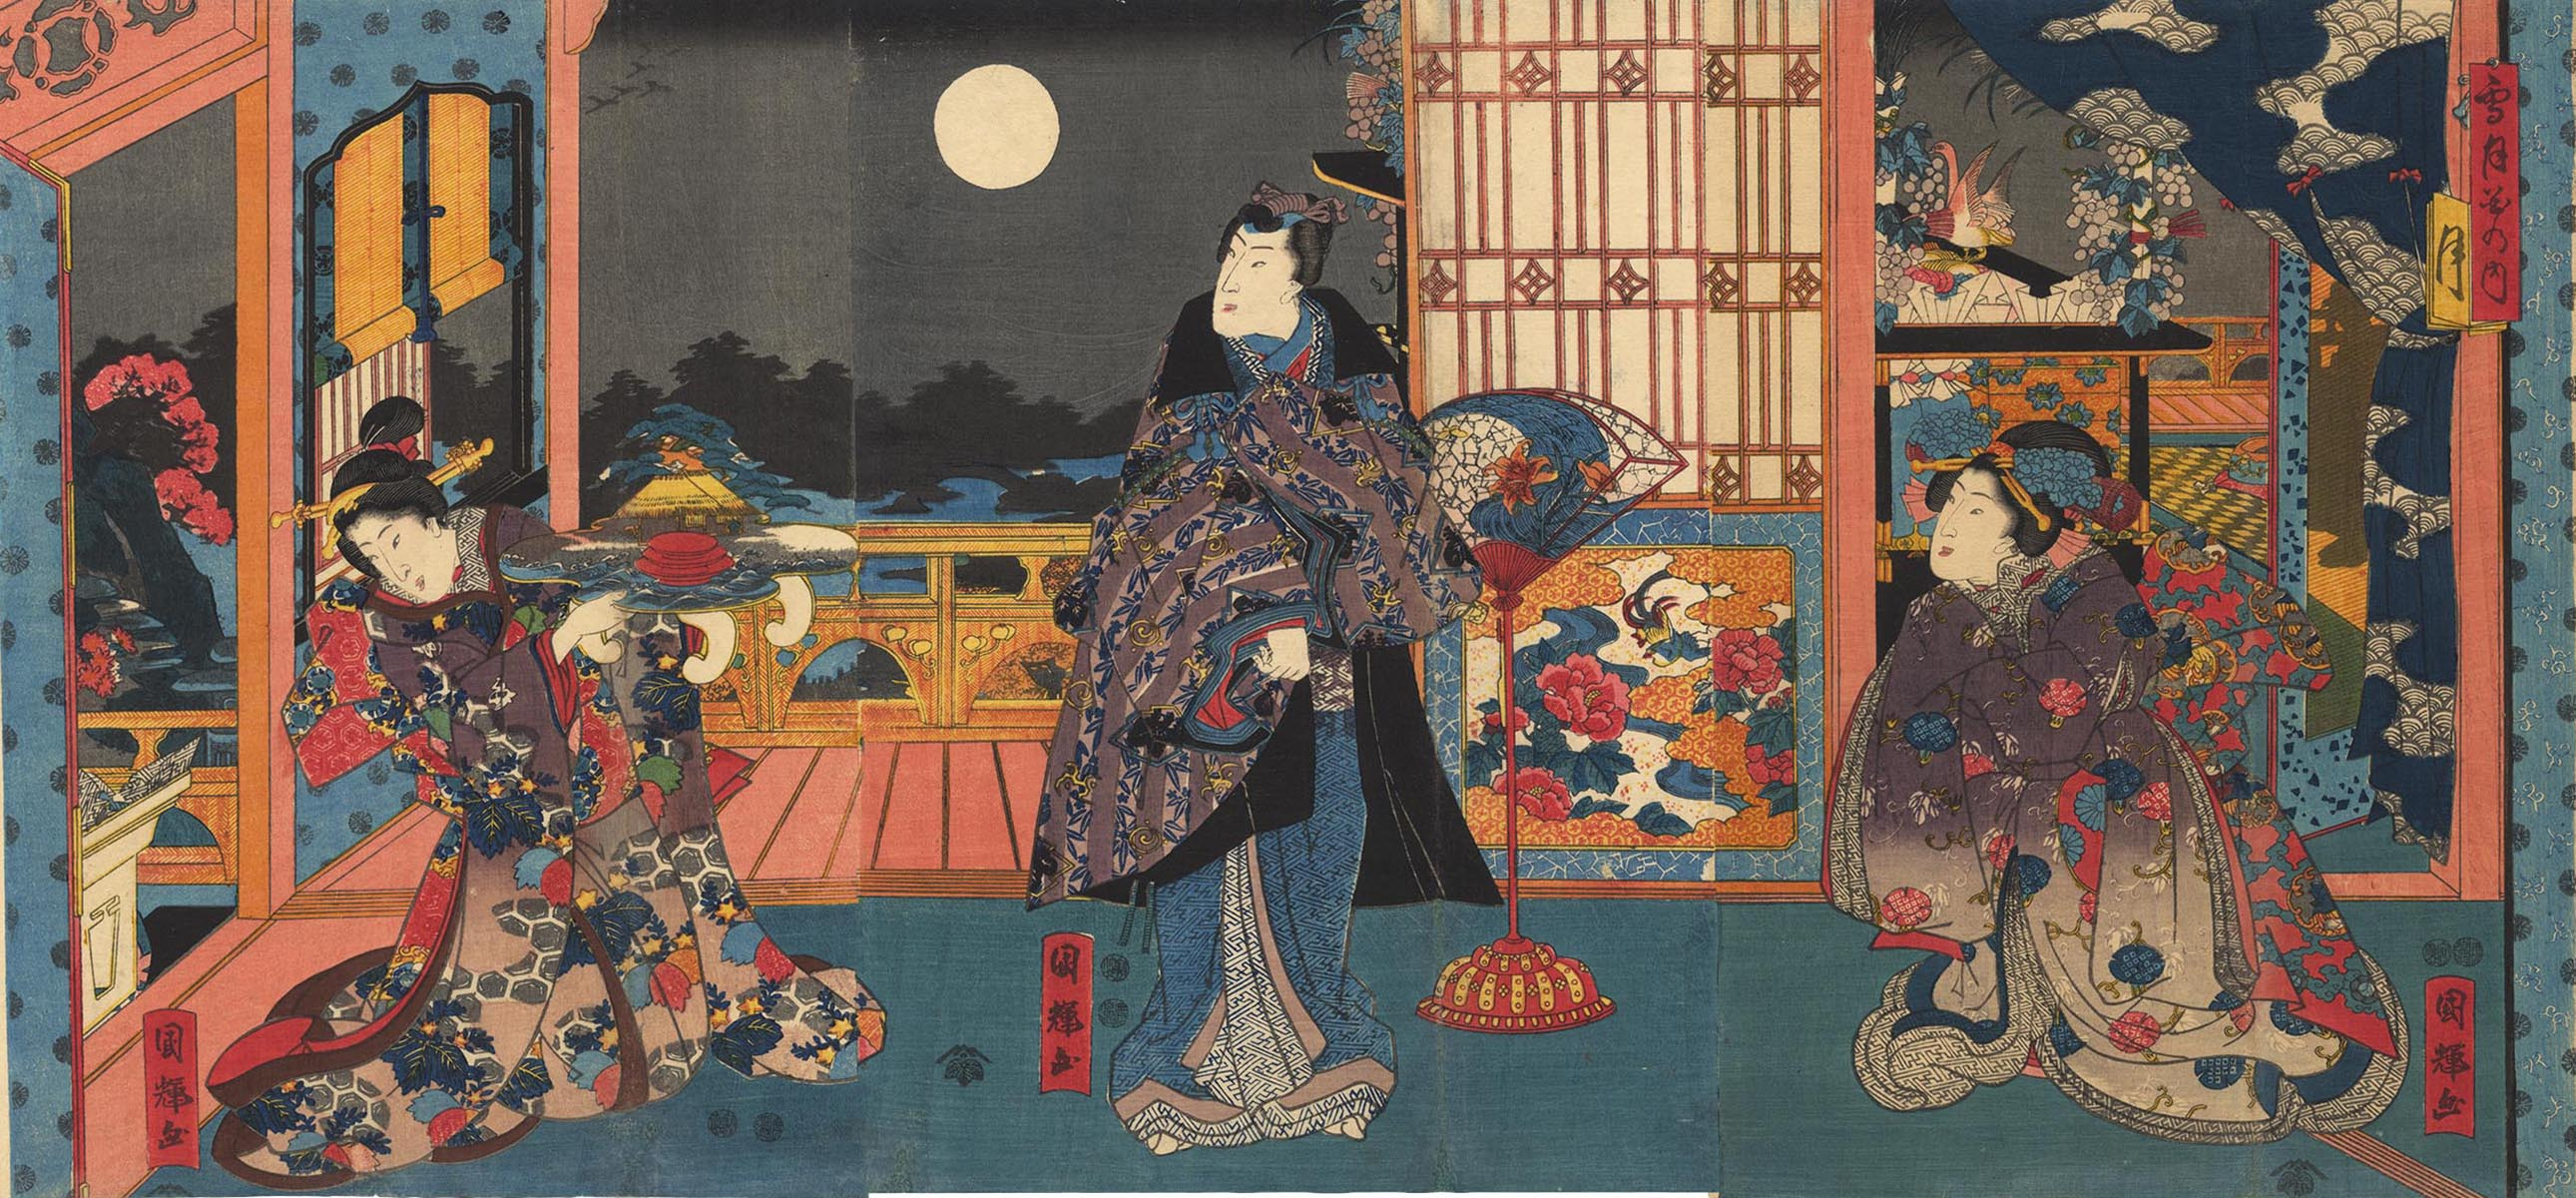 KUNITERU  (fl. 1850 ca.) The Genji and the moon